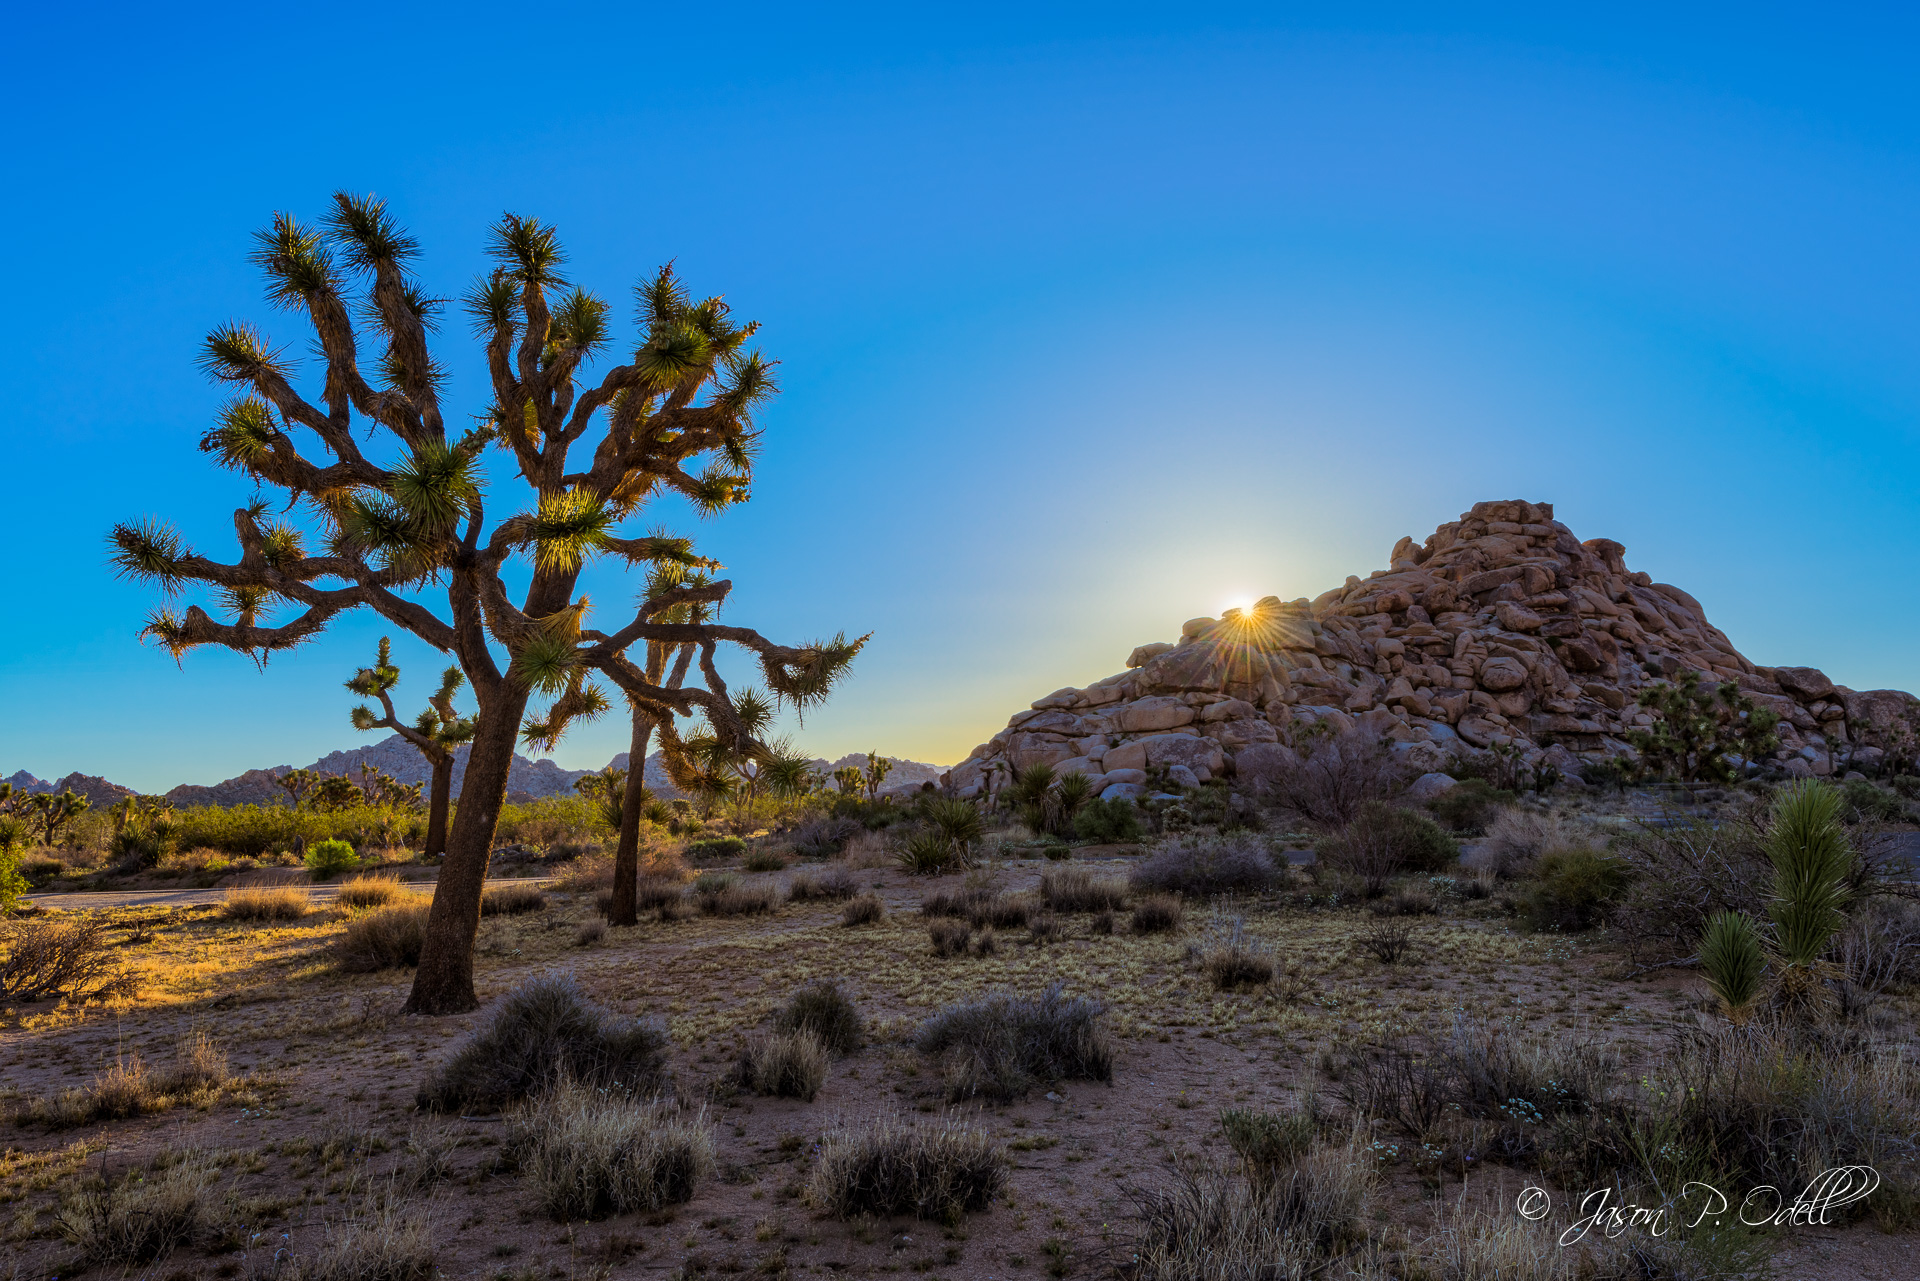 Sunrise in Joshua Tree National Park, California